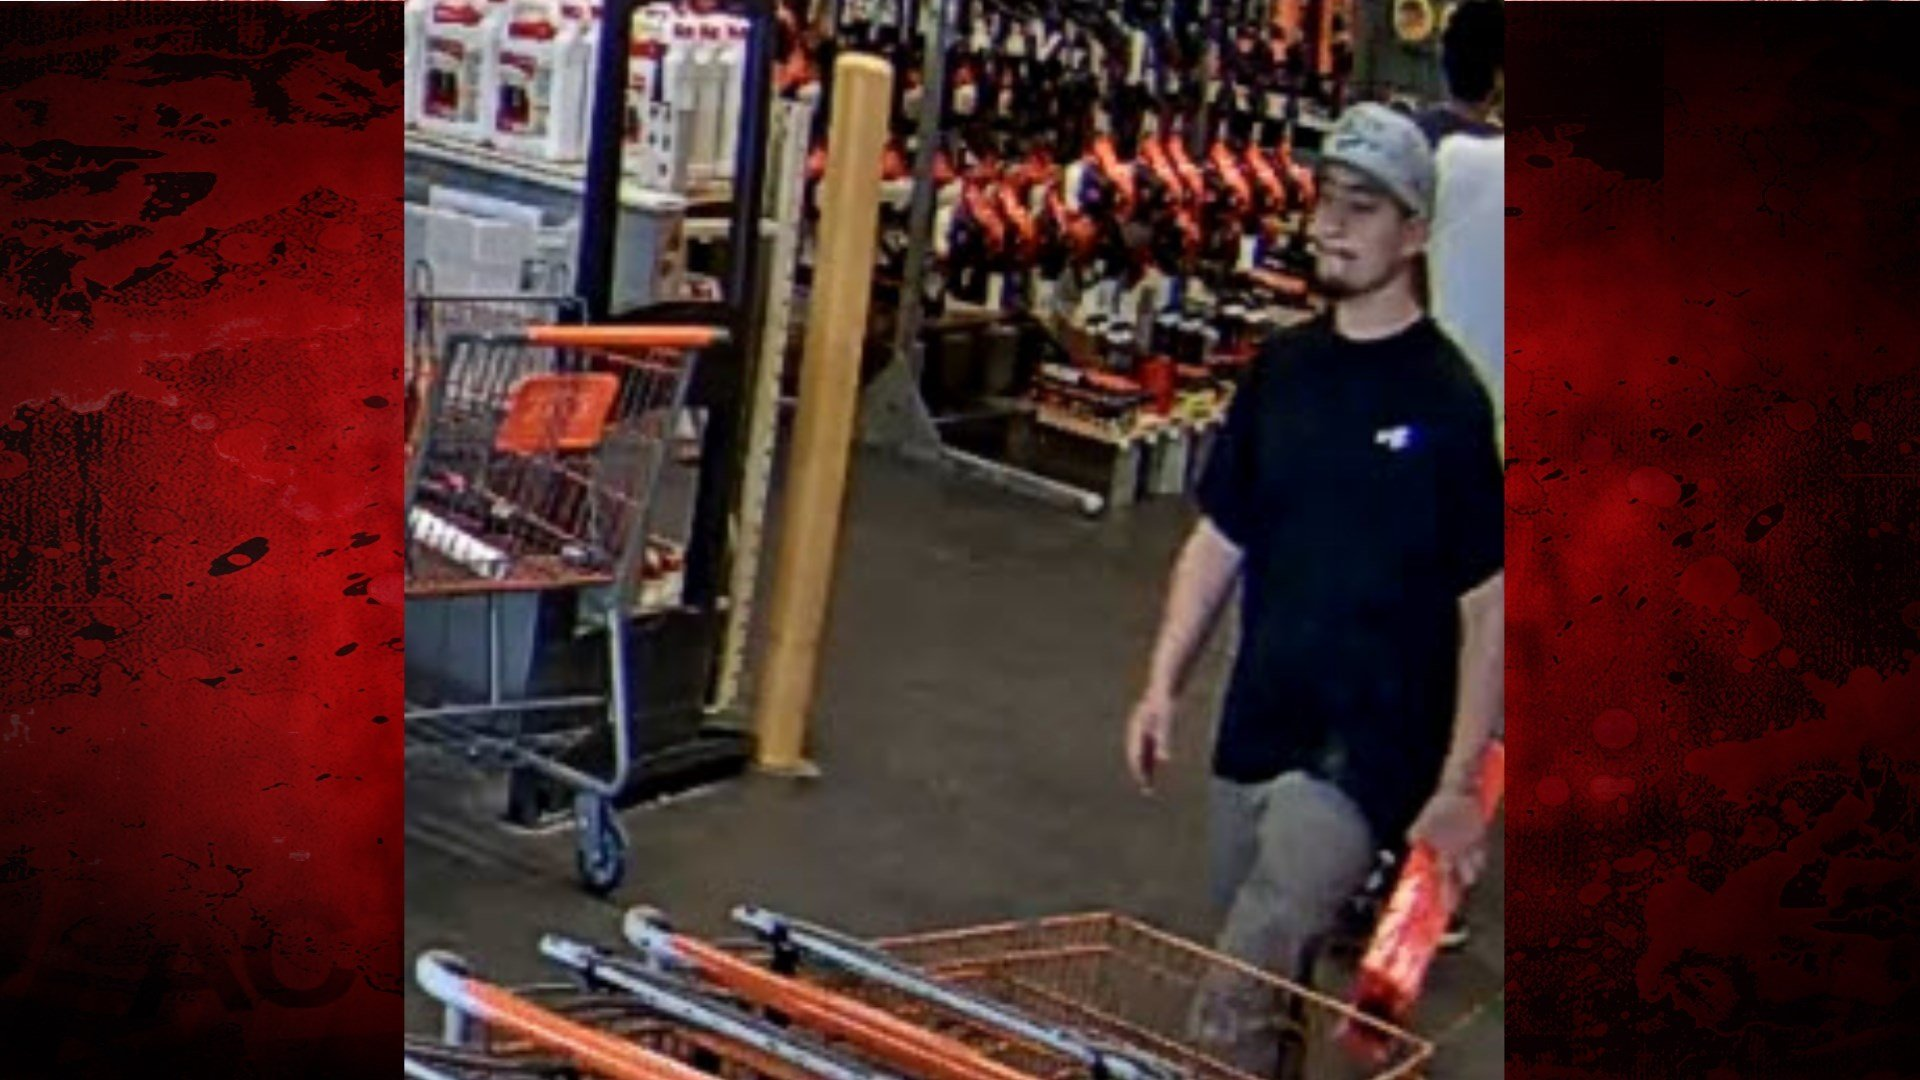 Man accused of stealing power tool from Home Depot KZTV